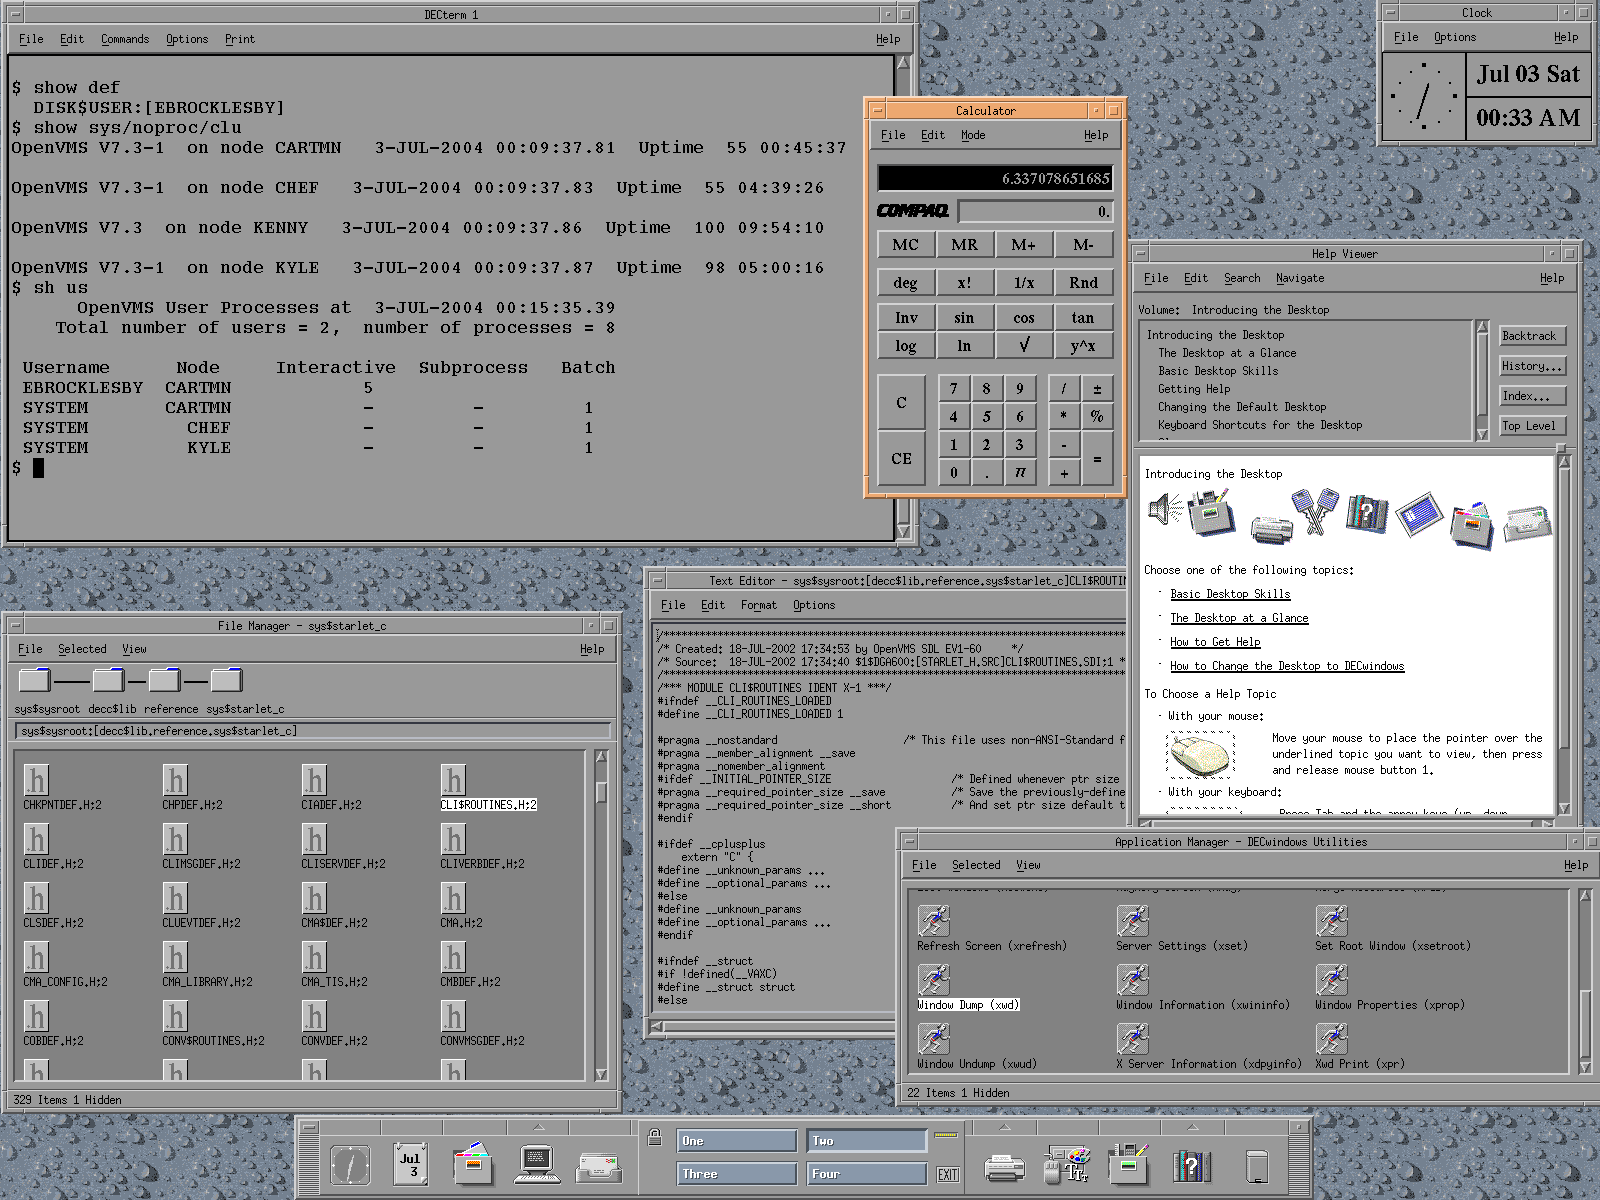 DECwindows-openvms-v7.3-1